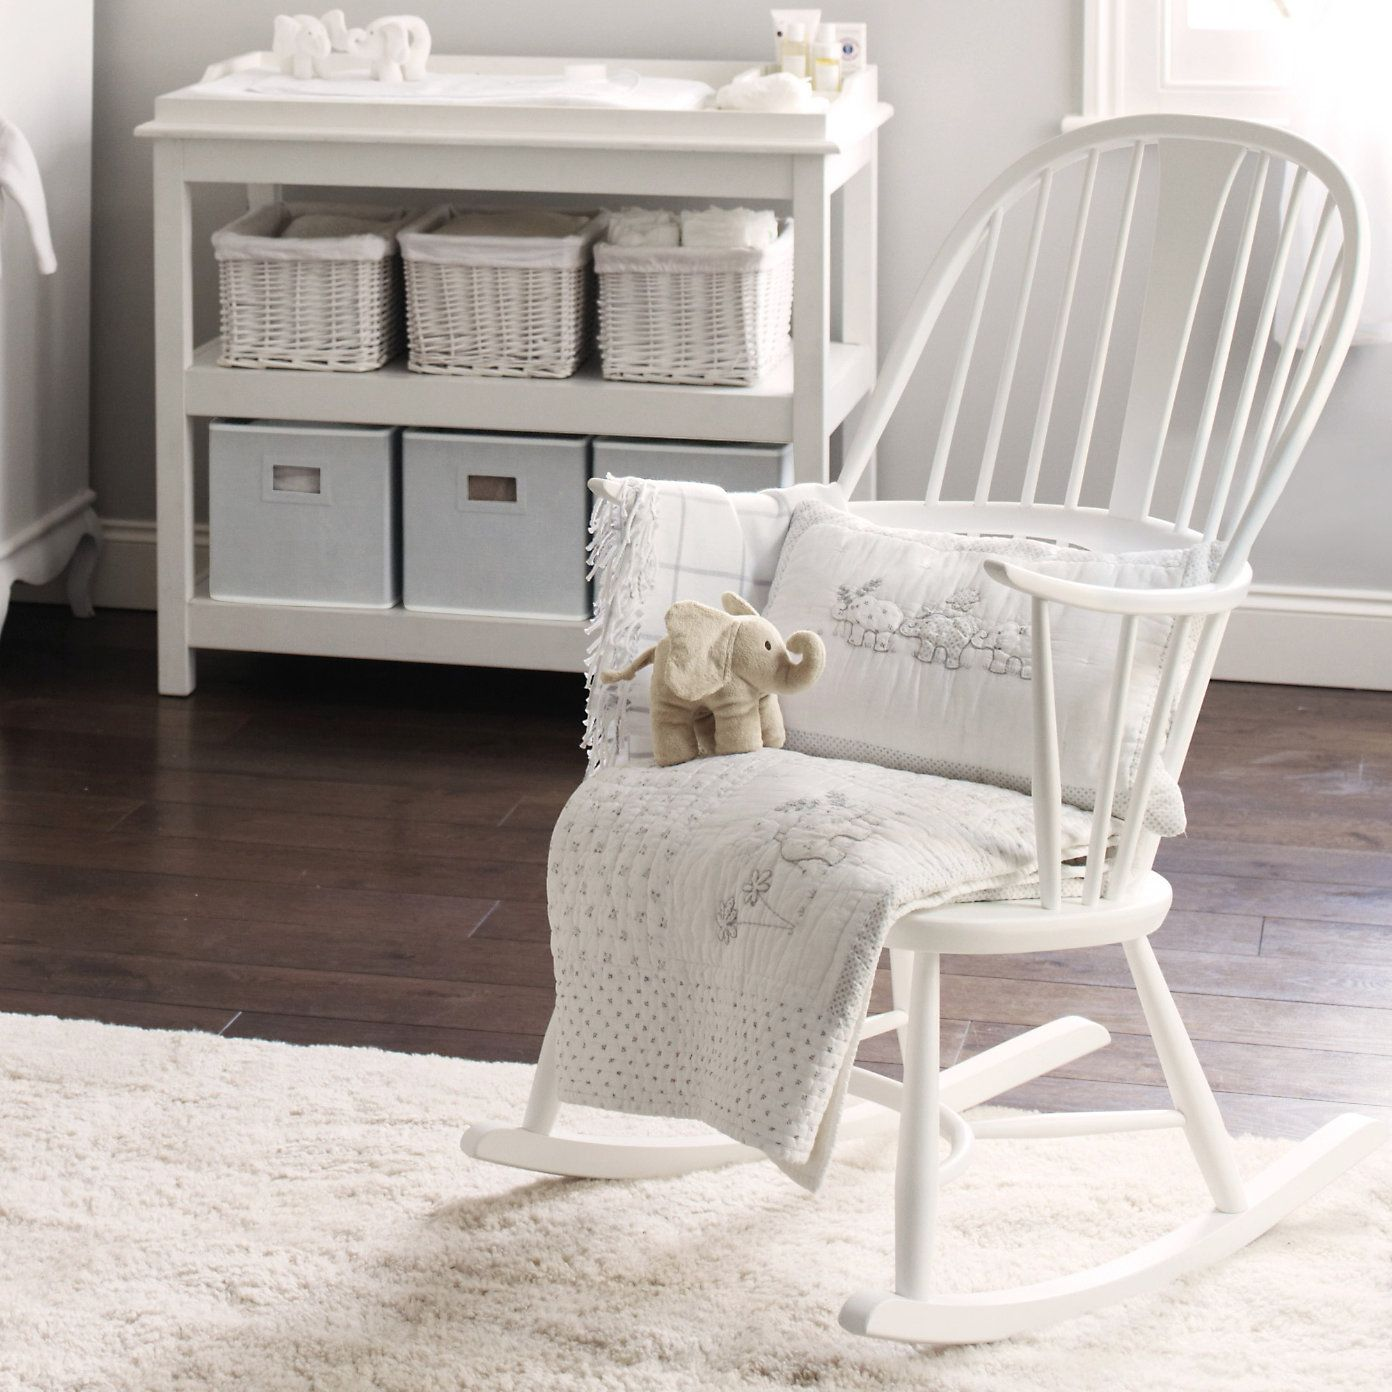 Ercol Rocking Chair Ercol Furniture The White Company More Rocking Chair Nursery White Rocking Chairs Ercol Rocking Chair